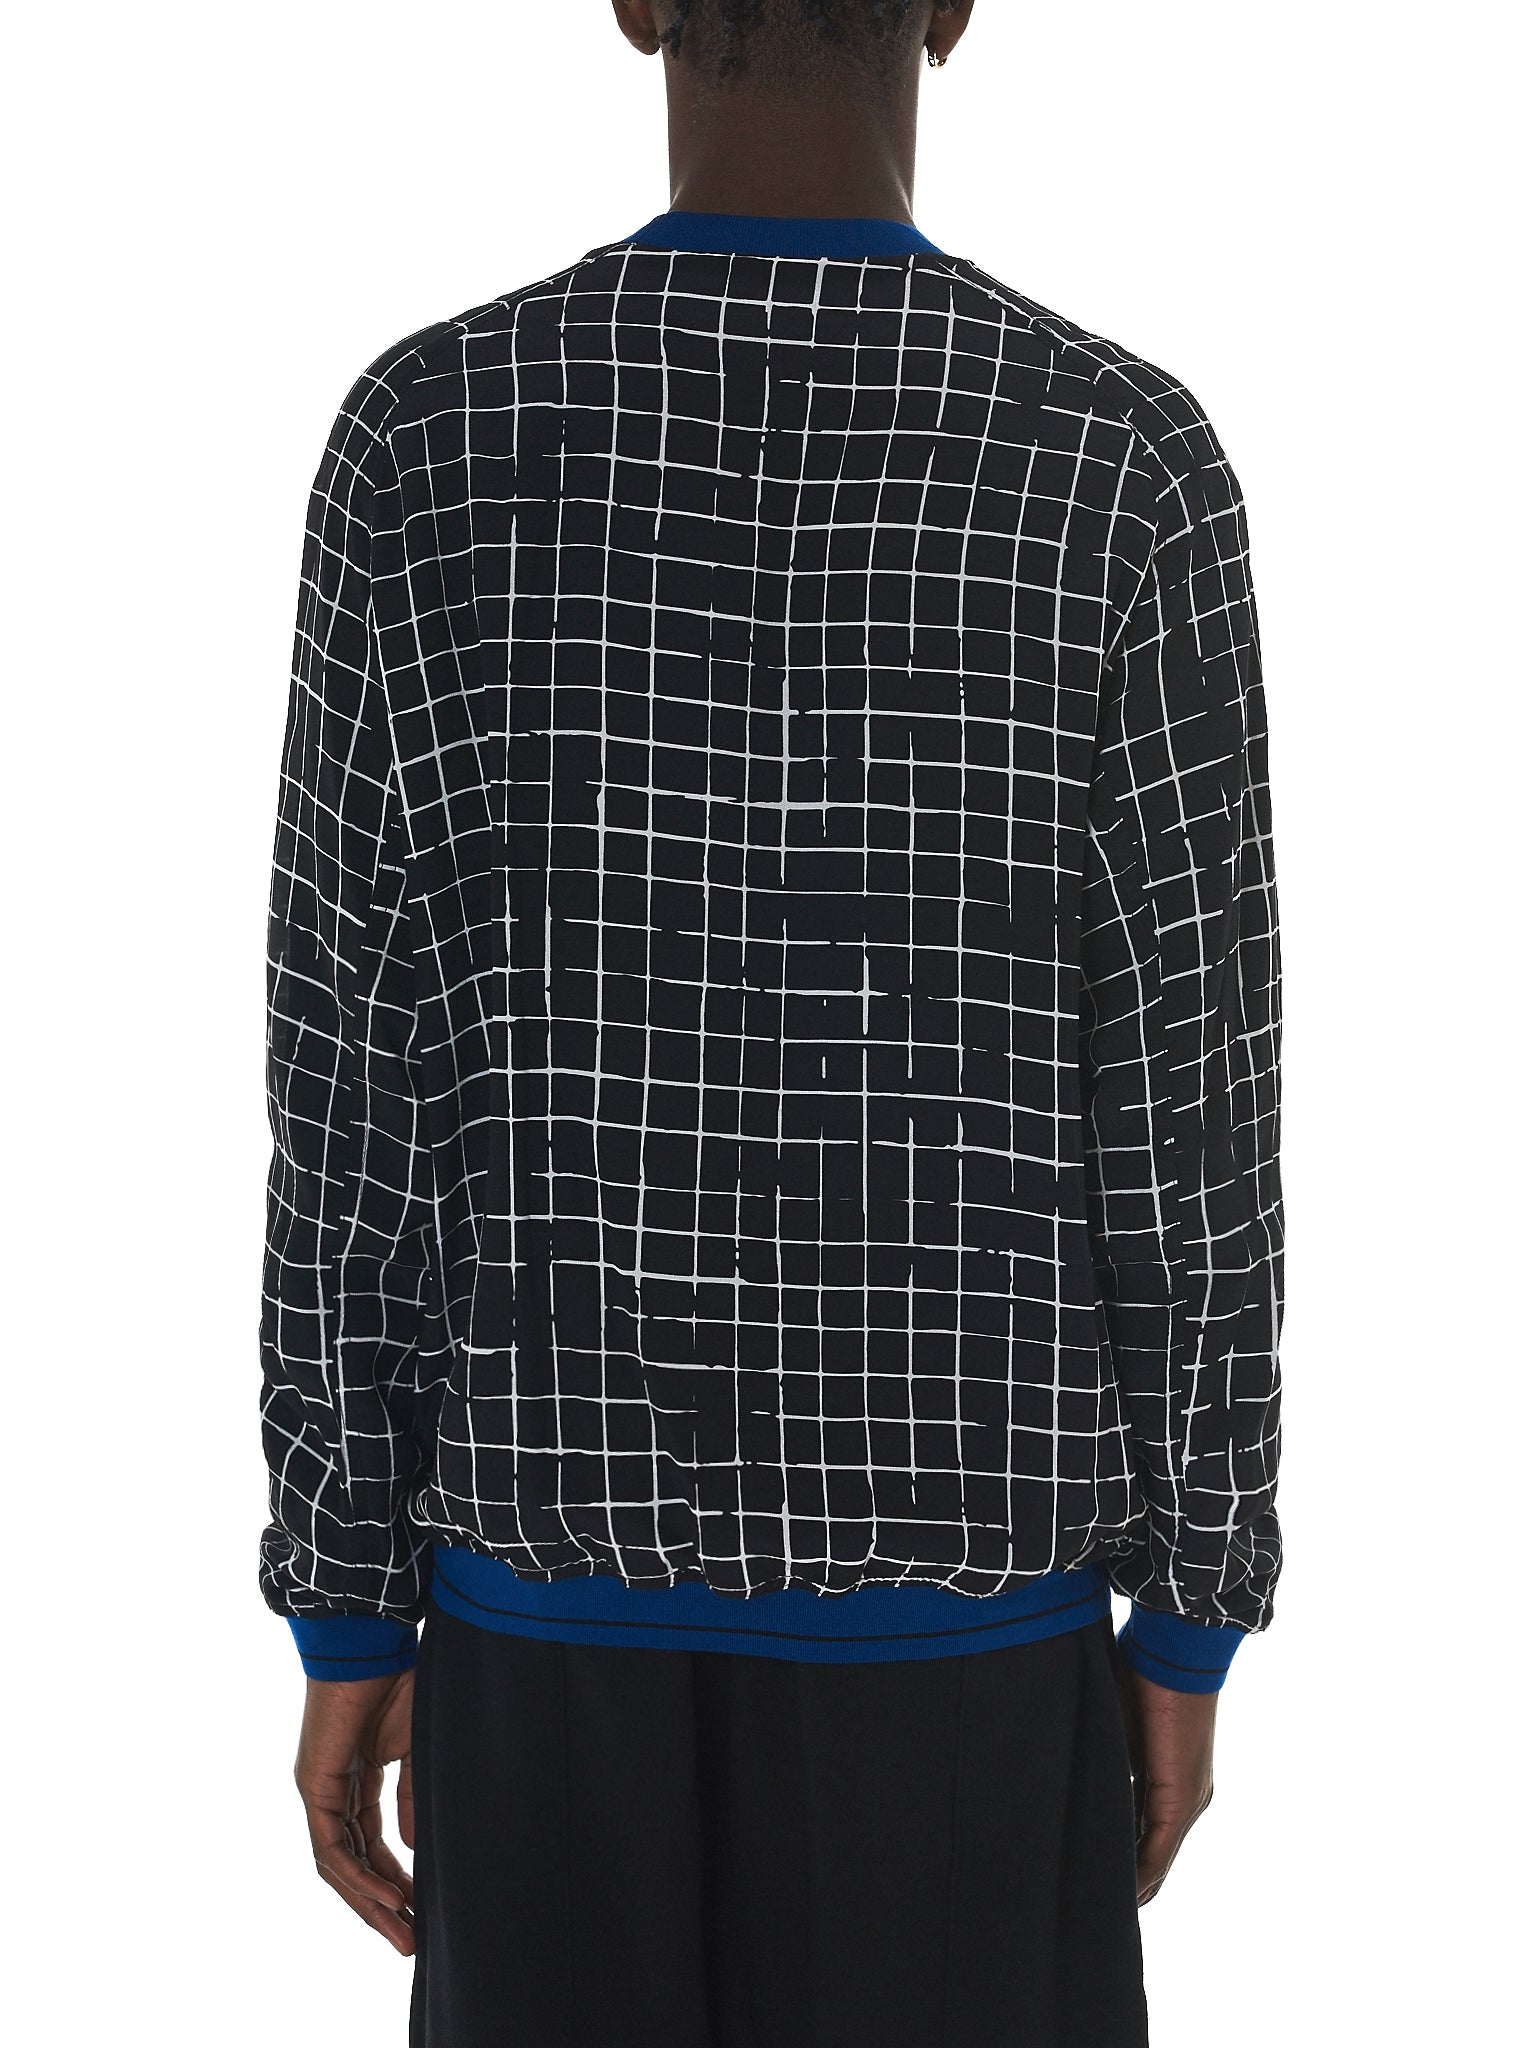 Haider Ackermann Grid Check Sweater - Hlorenzo Back